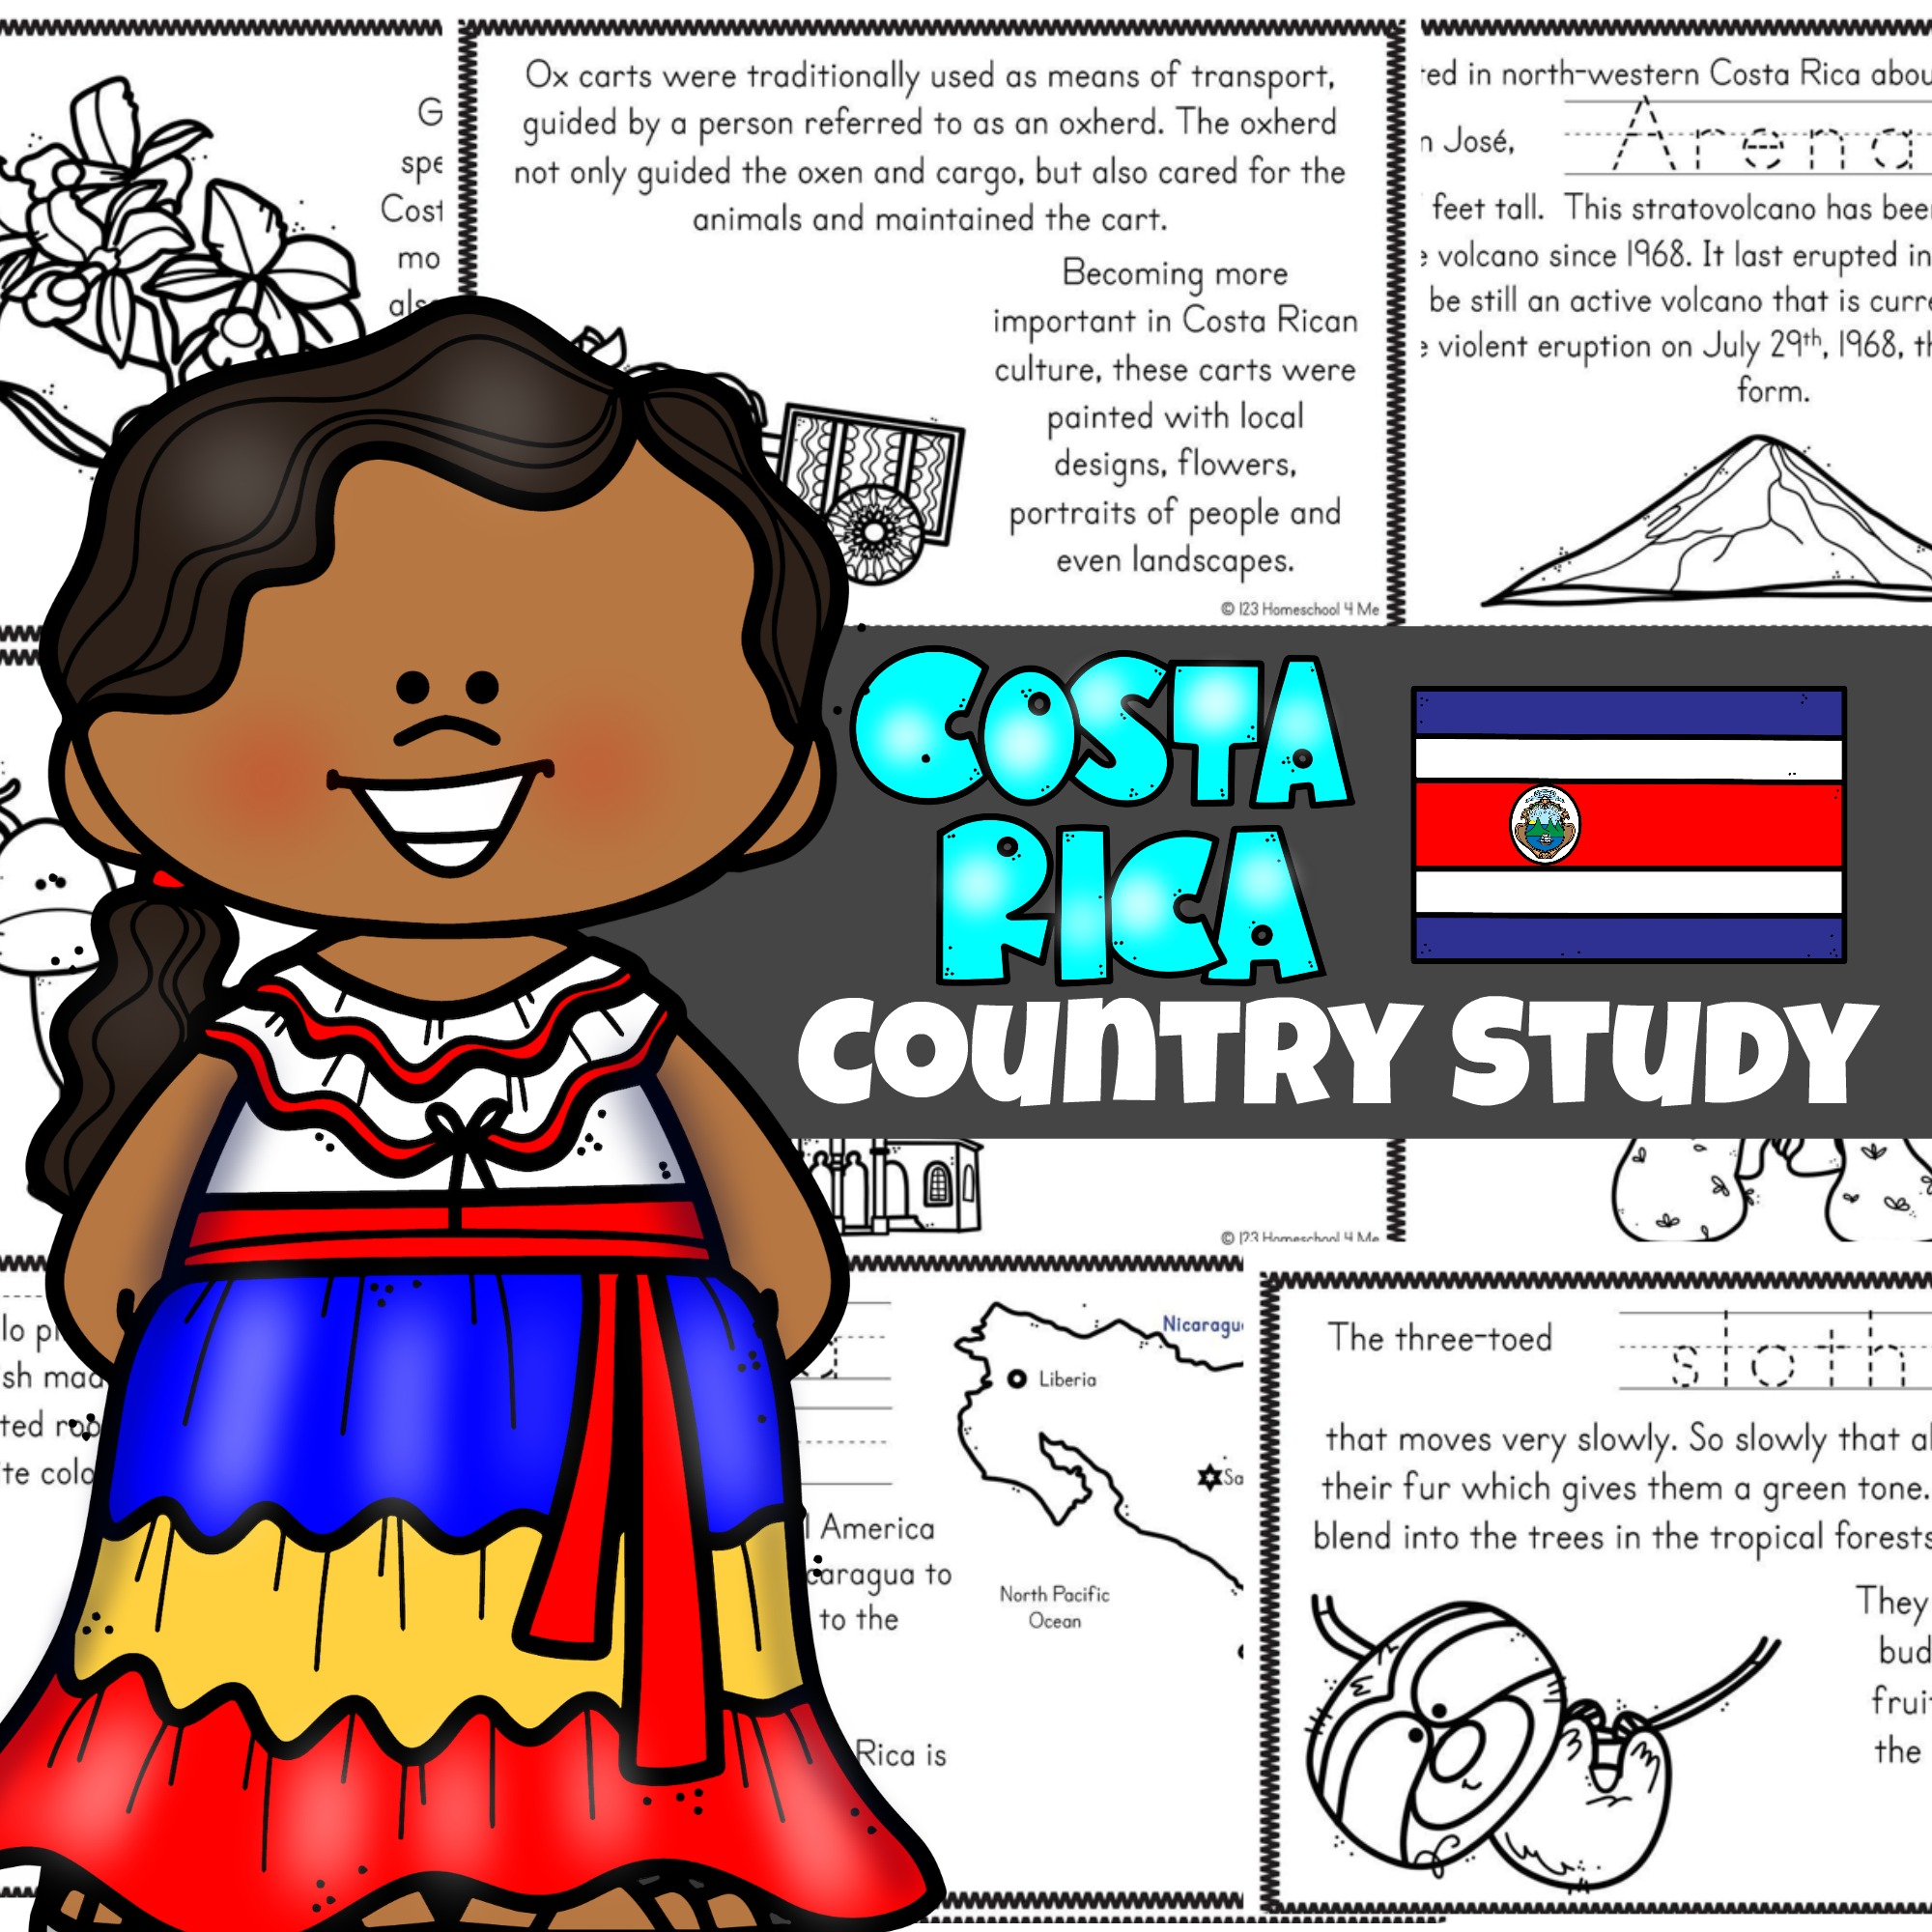 Costa Rica Country Study